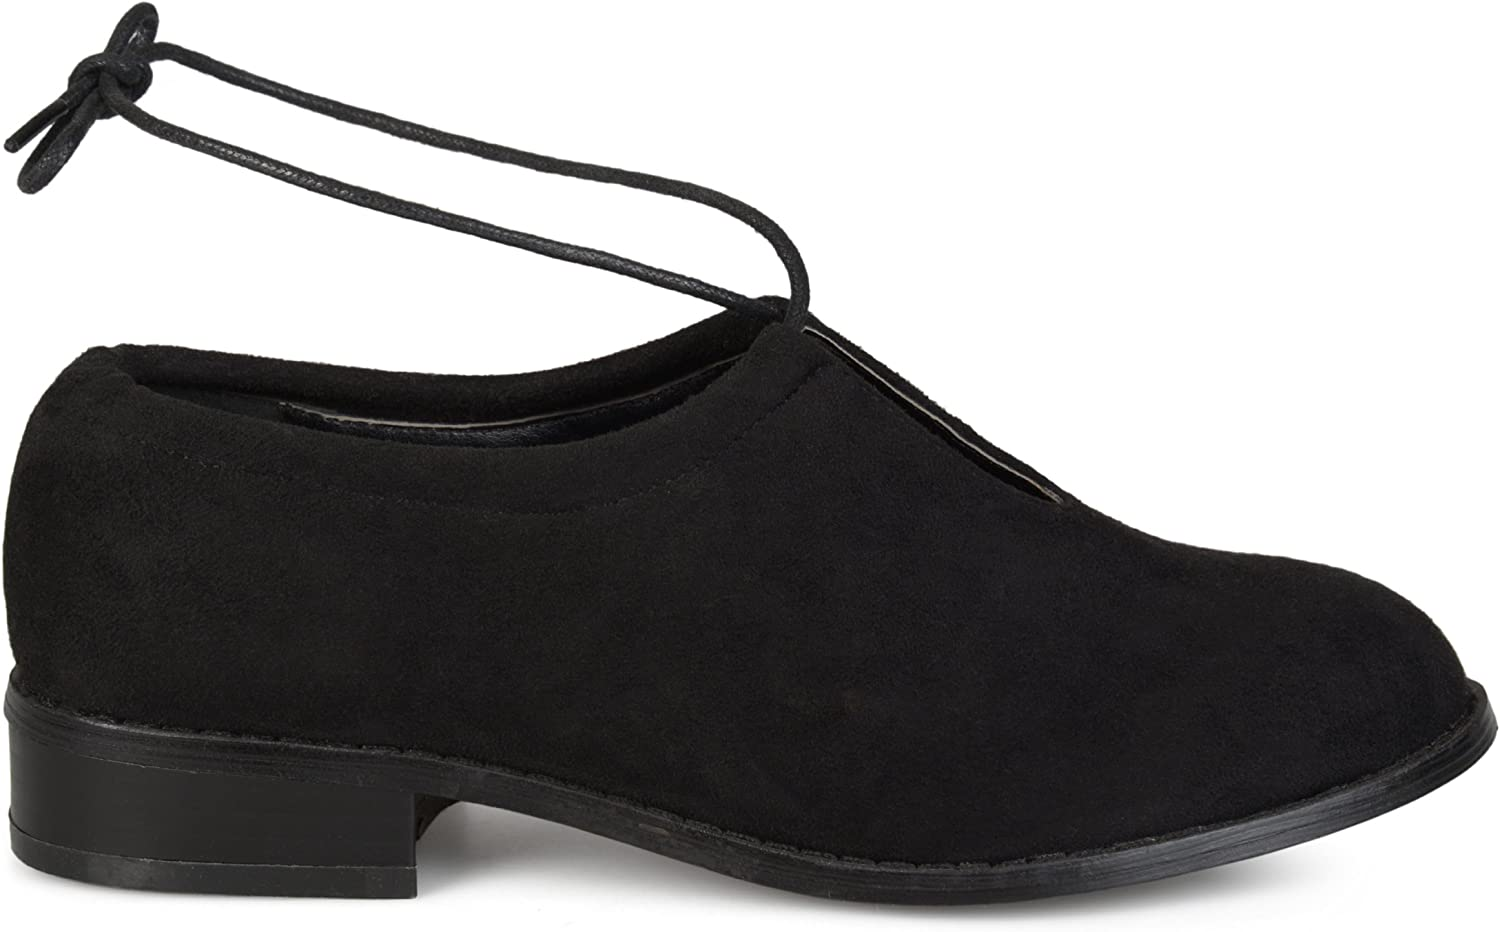 Brinley Co. Womens Faux Suede Ankle Lace-up Cut-Out Round Toe Flats